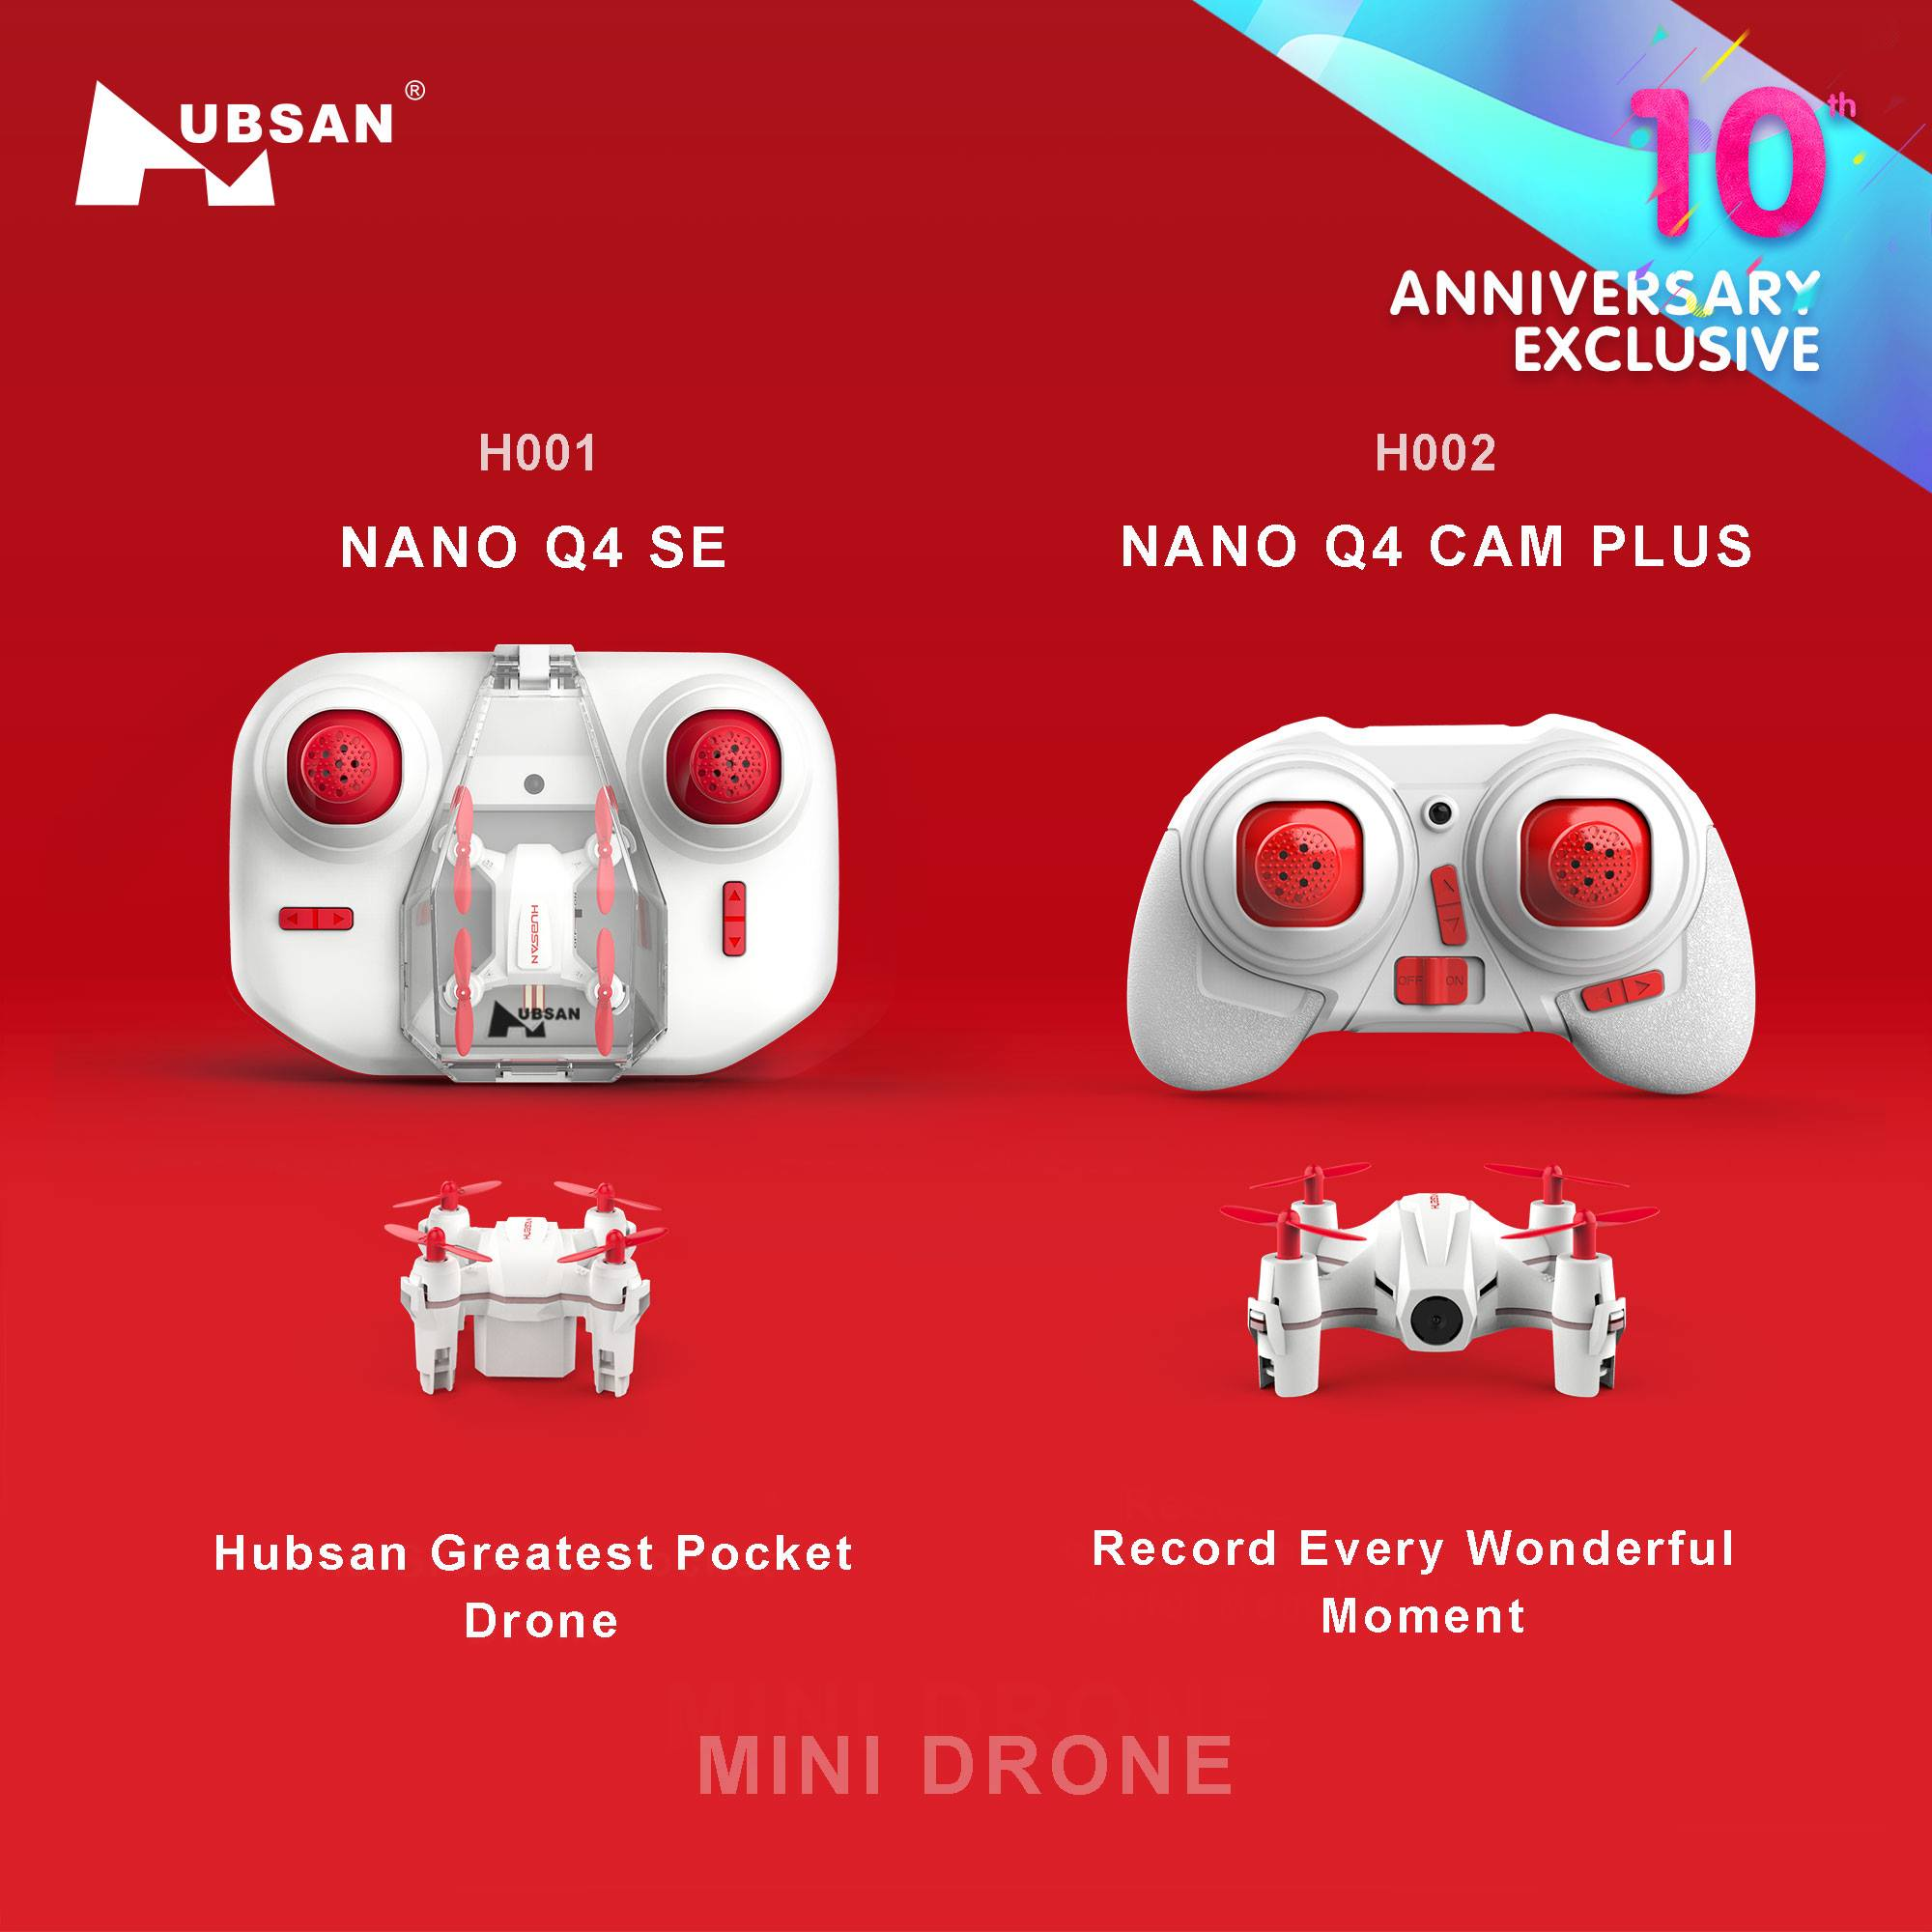 Hubsan Greatest Pocket Drone